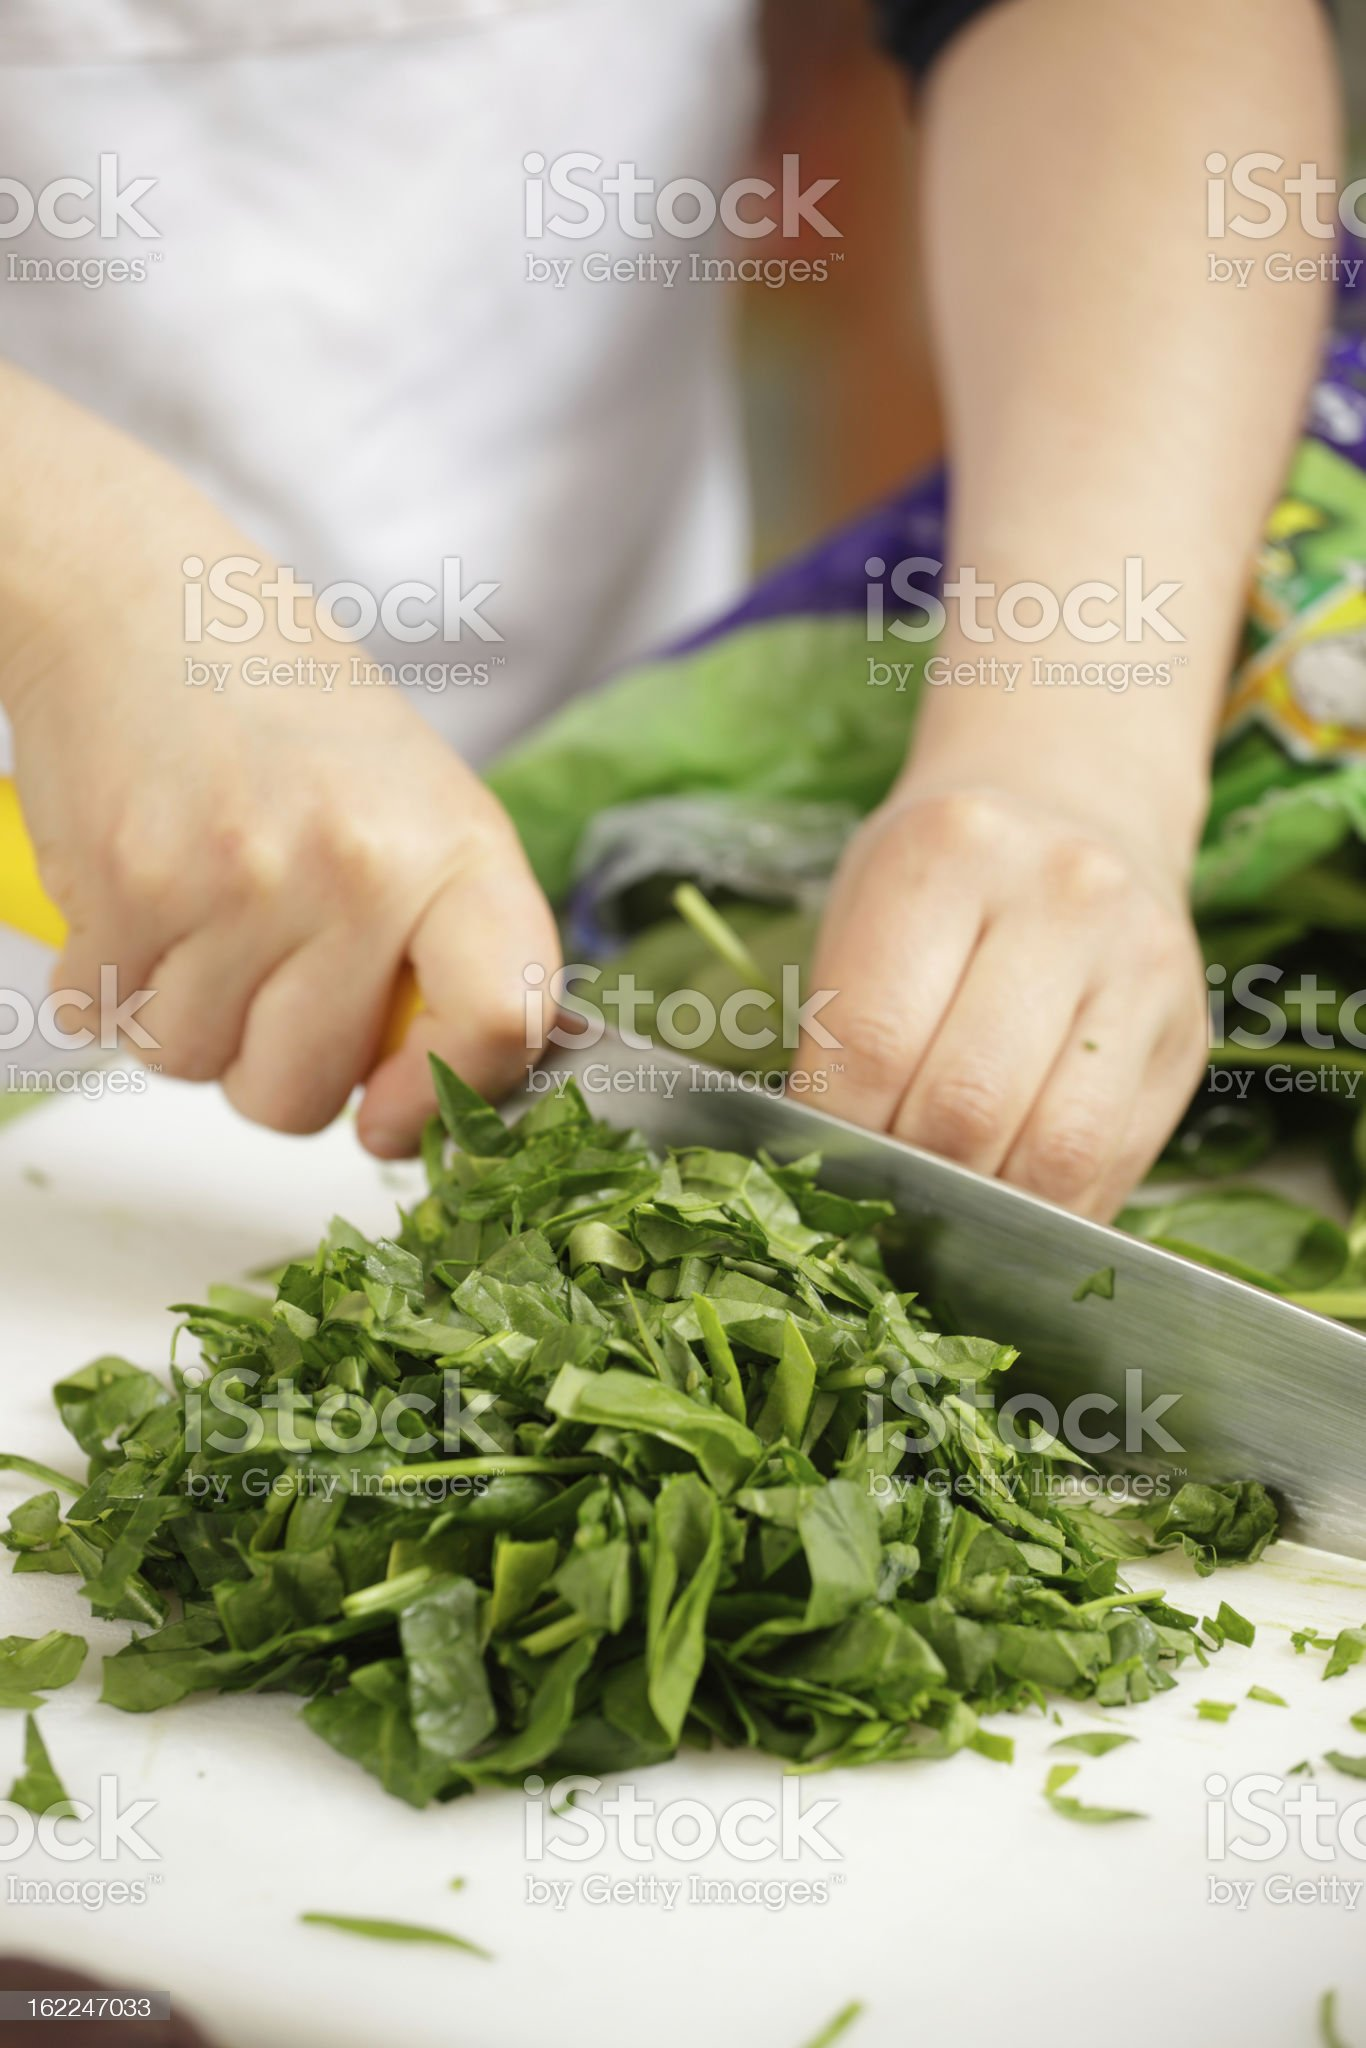 Chopping royalty-free stock photo